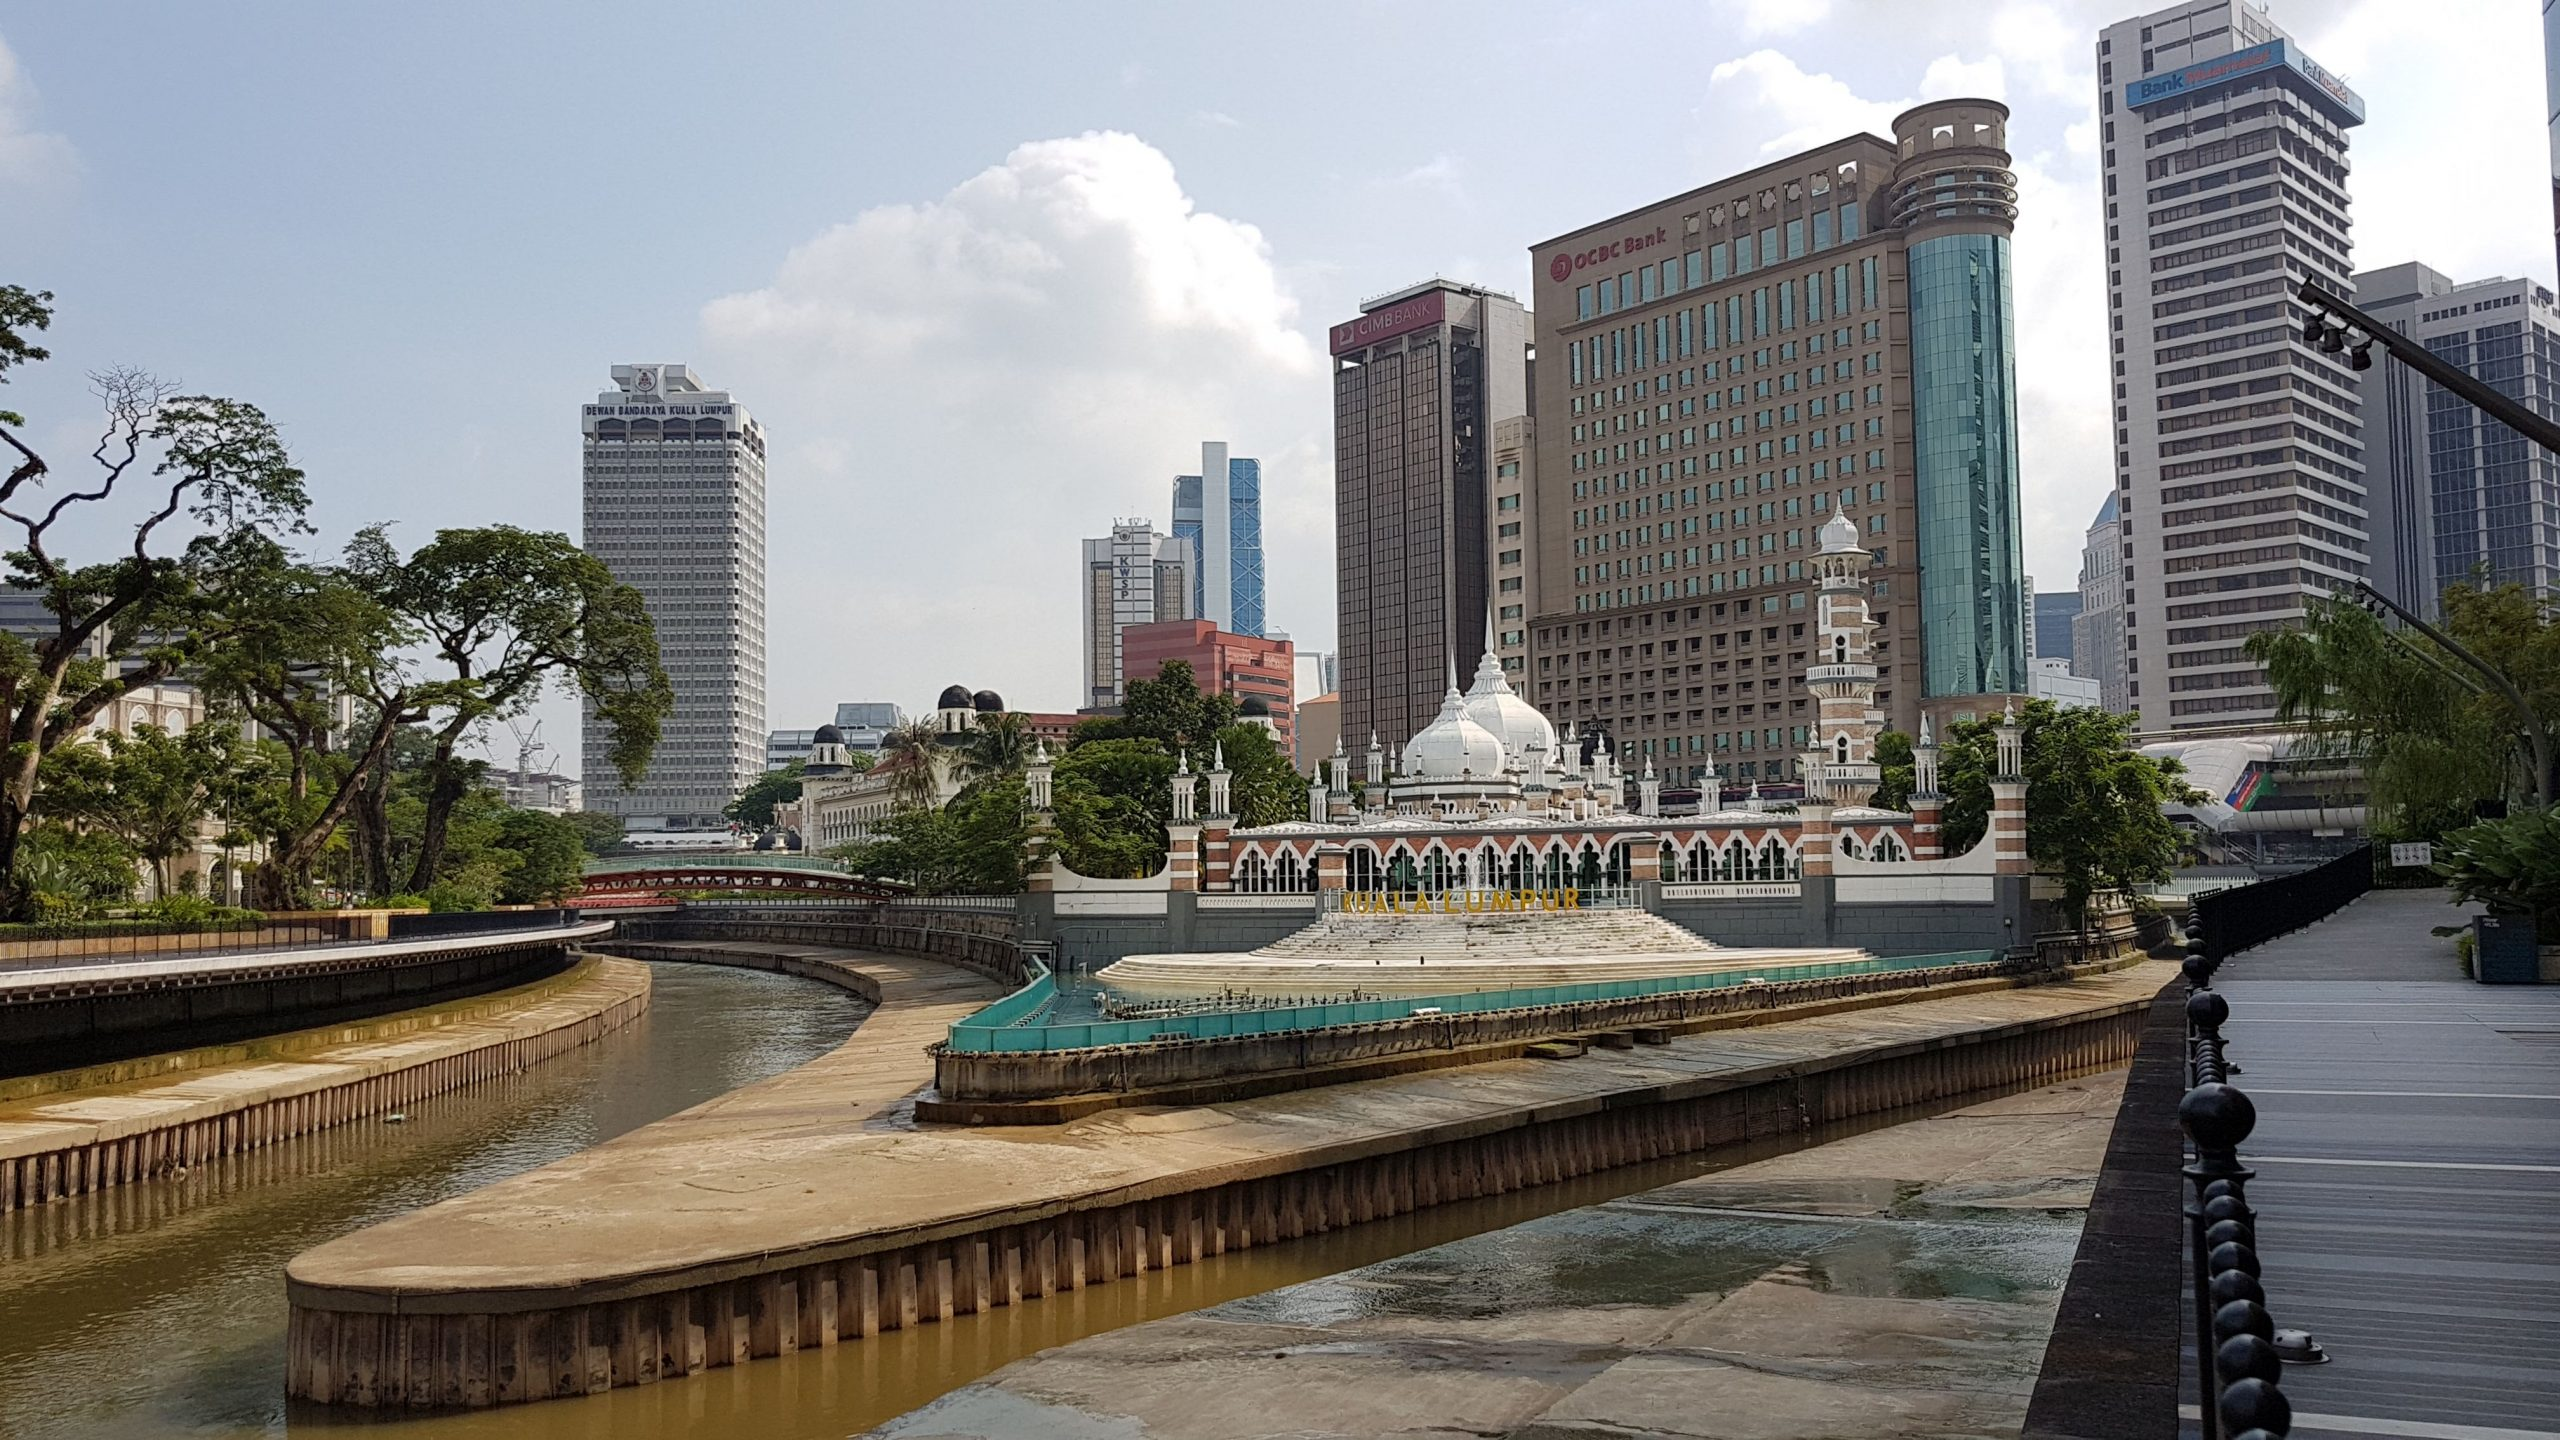 Architecture of old Jamek Mosque in KL